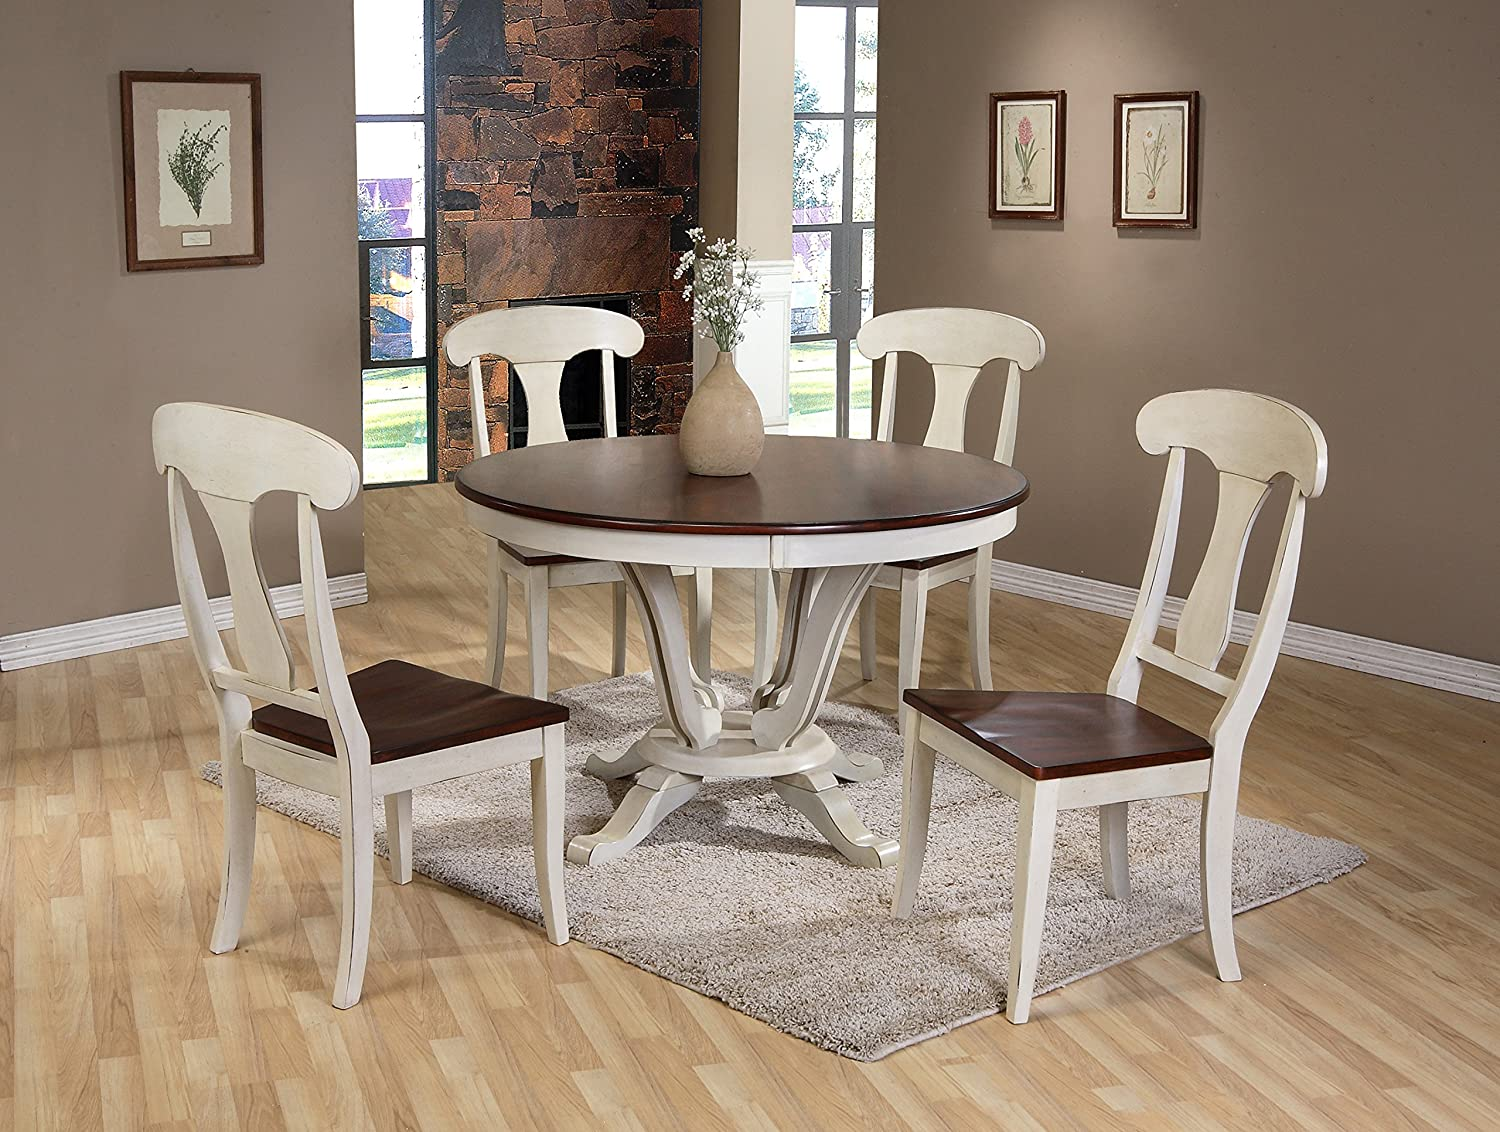 gg baxton studio 5 piece modern dining set 2. amazoncom baxton studio napoleon chic country cottage antique oak wood and distressed white 5piece dining set with 48inch round pedestal base fixed top gg 5 piece modern 2 v